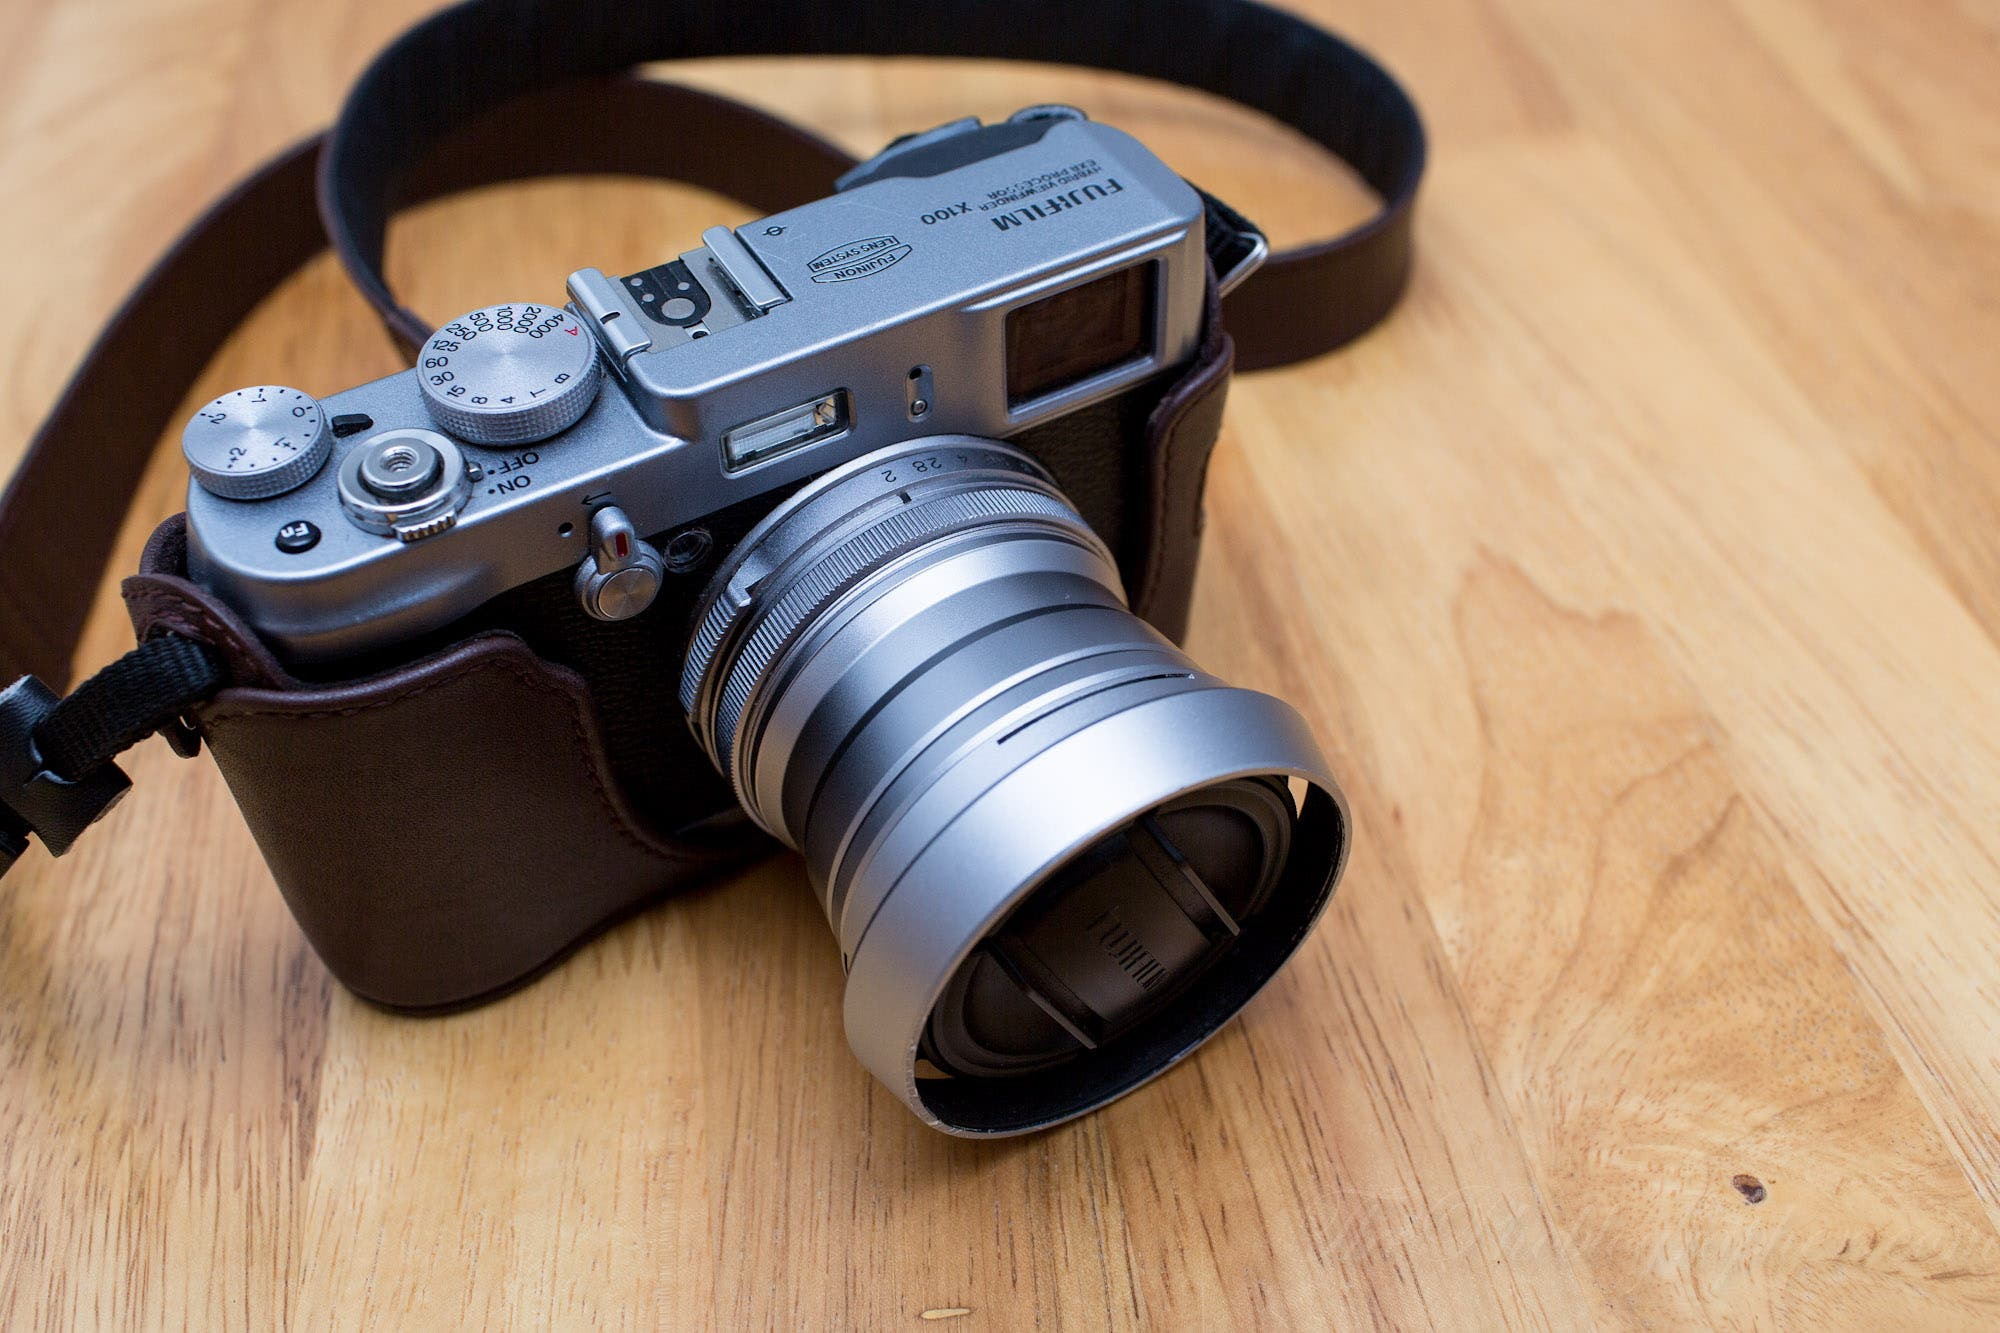 Earlier Reports Confirmed As False: The Fujifilm X100 Is Not Discontinued